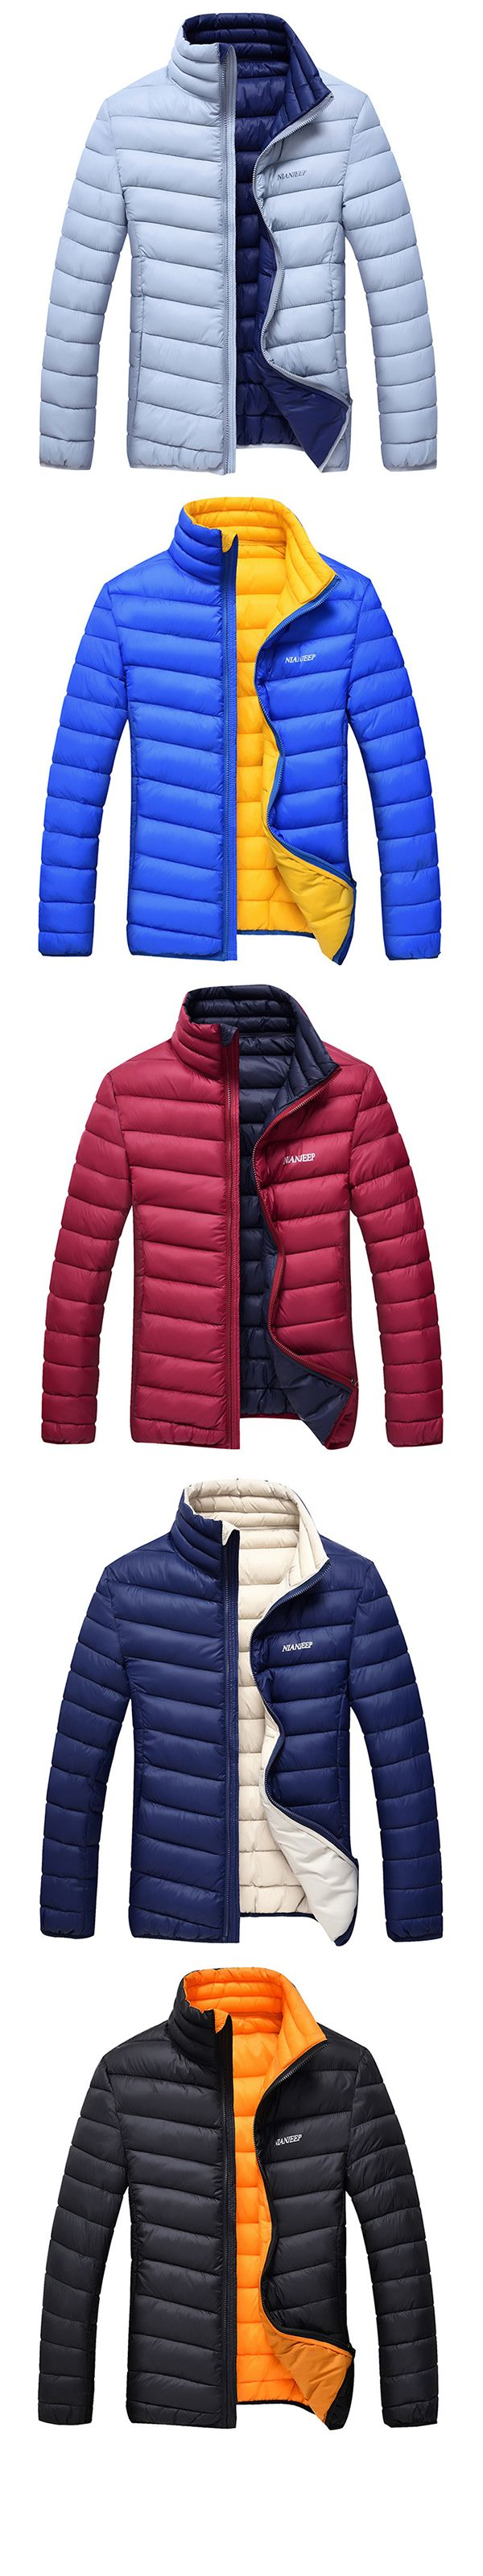 US$38.66 Winter Travel Thicken Warm Lightweight Stand Collar Solid Color Jacket for Men